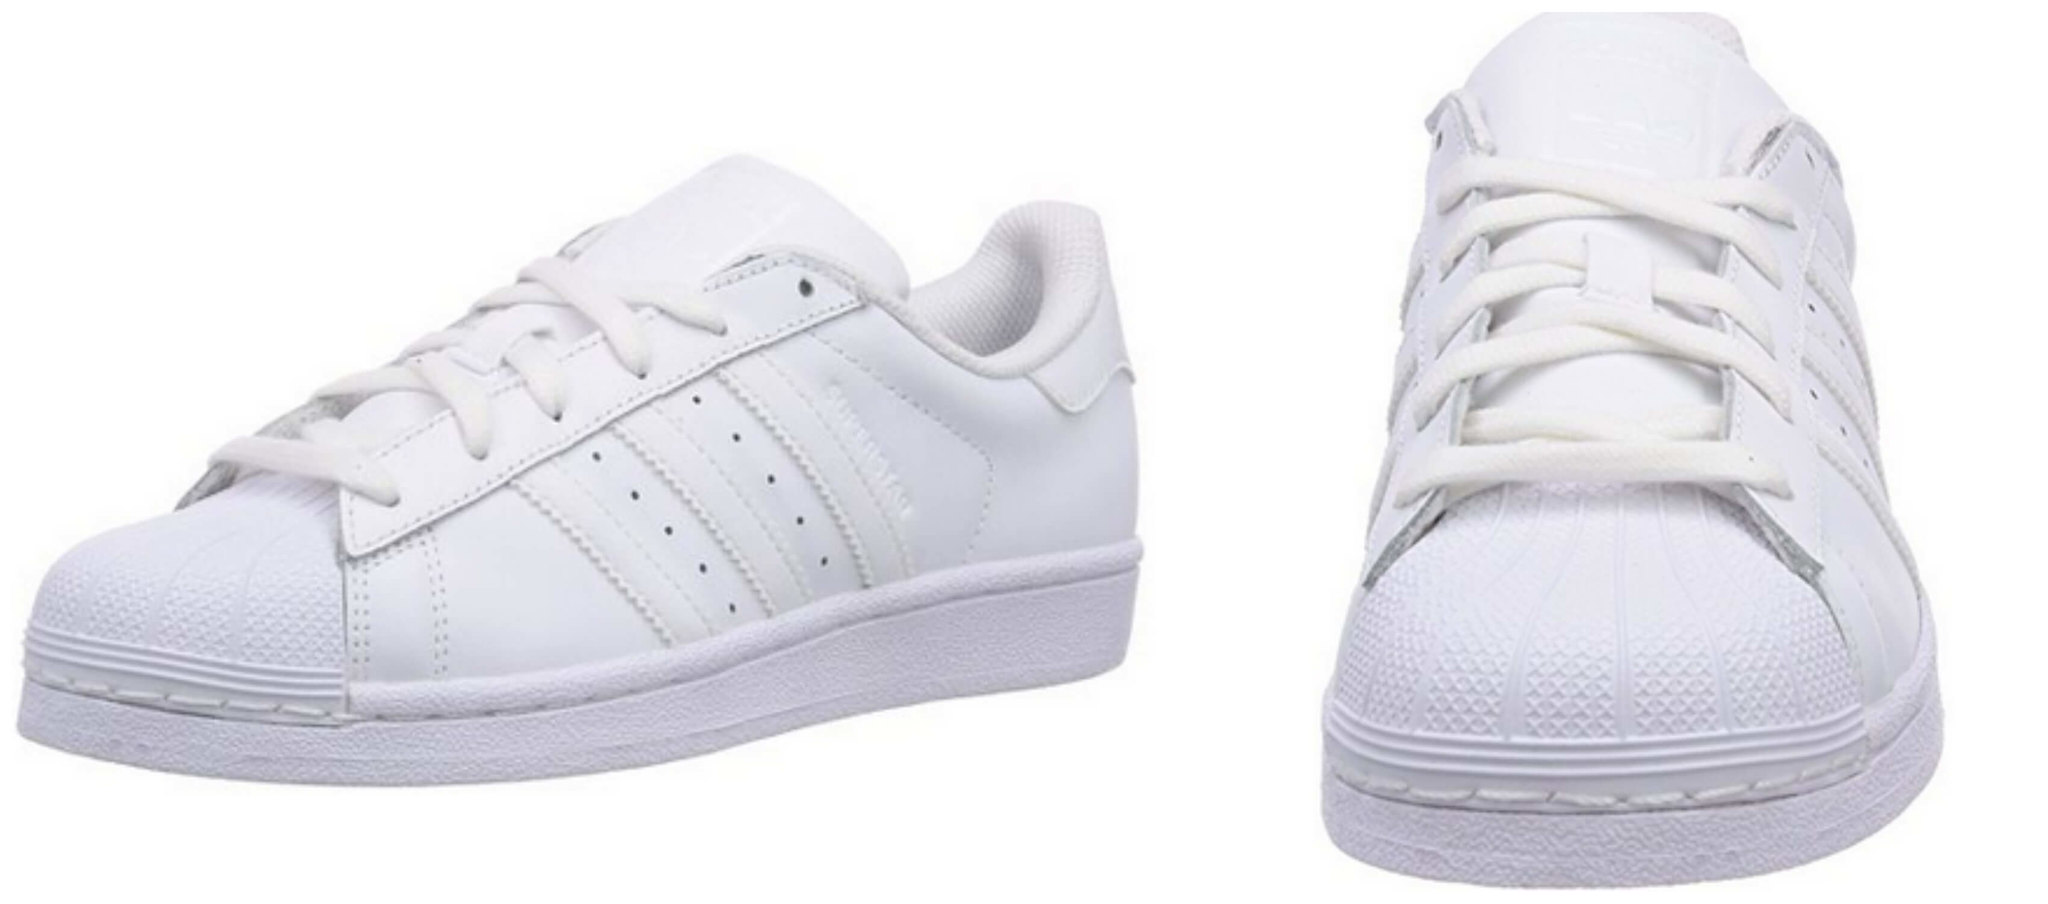 newest a7f49 7bfd2 Mejores Adidas Superstar